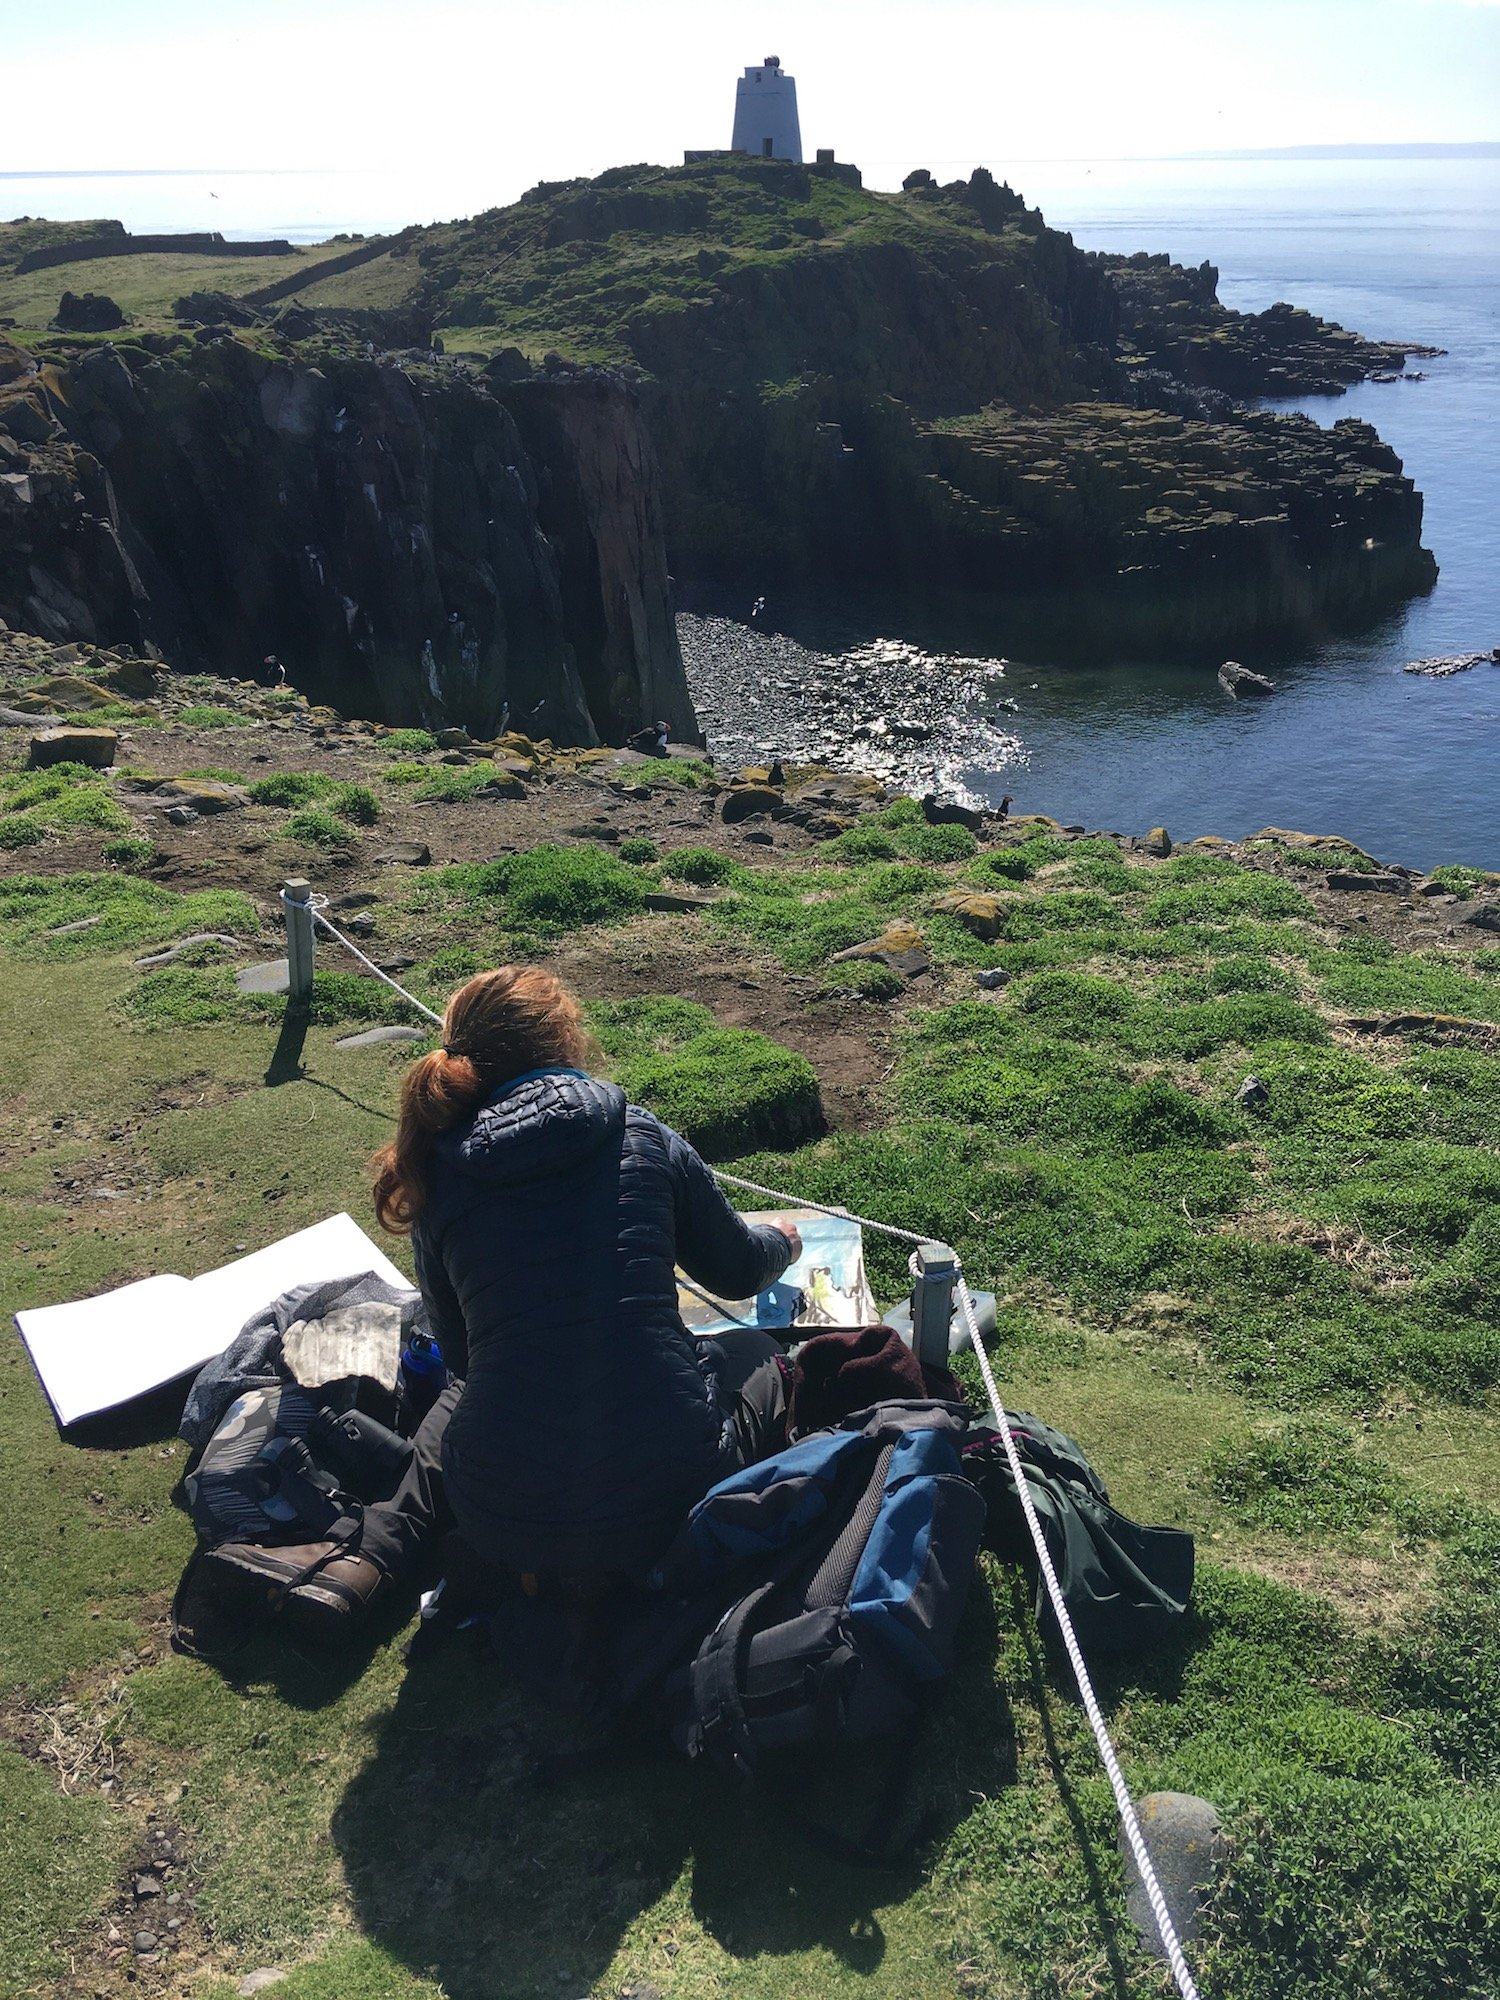 Sketching, puffins in the foreground and a guillemot colony in the distance.